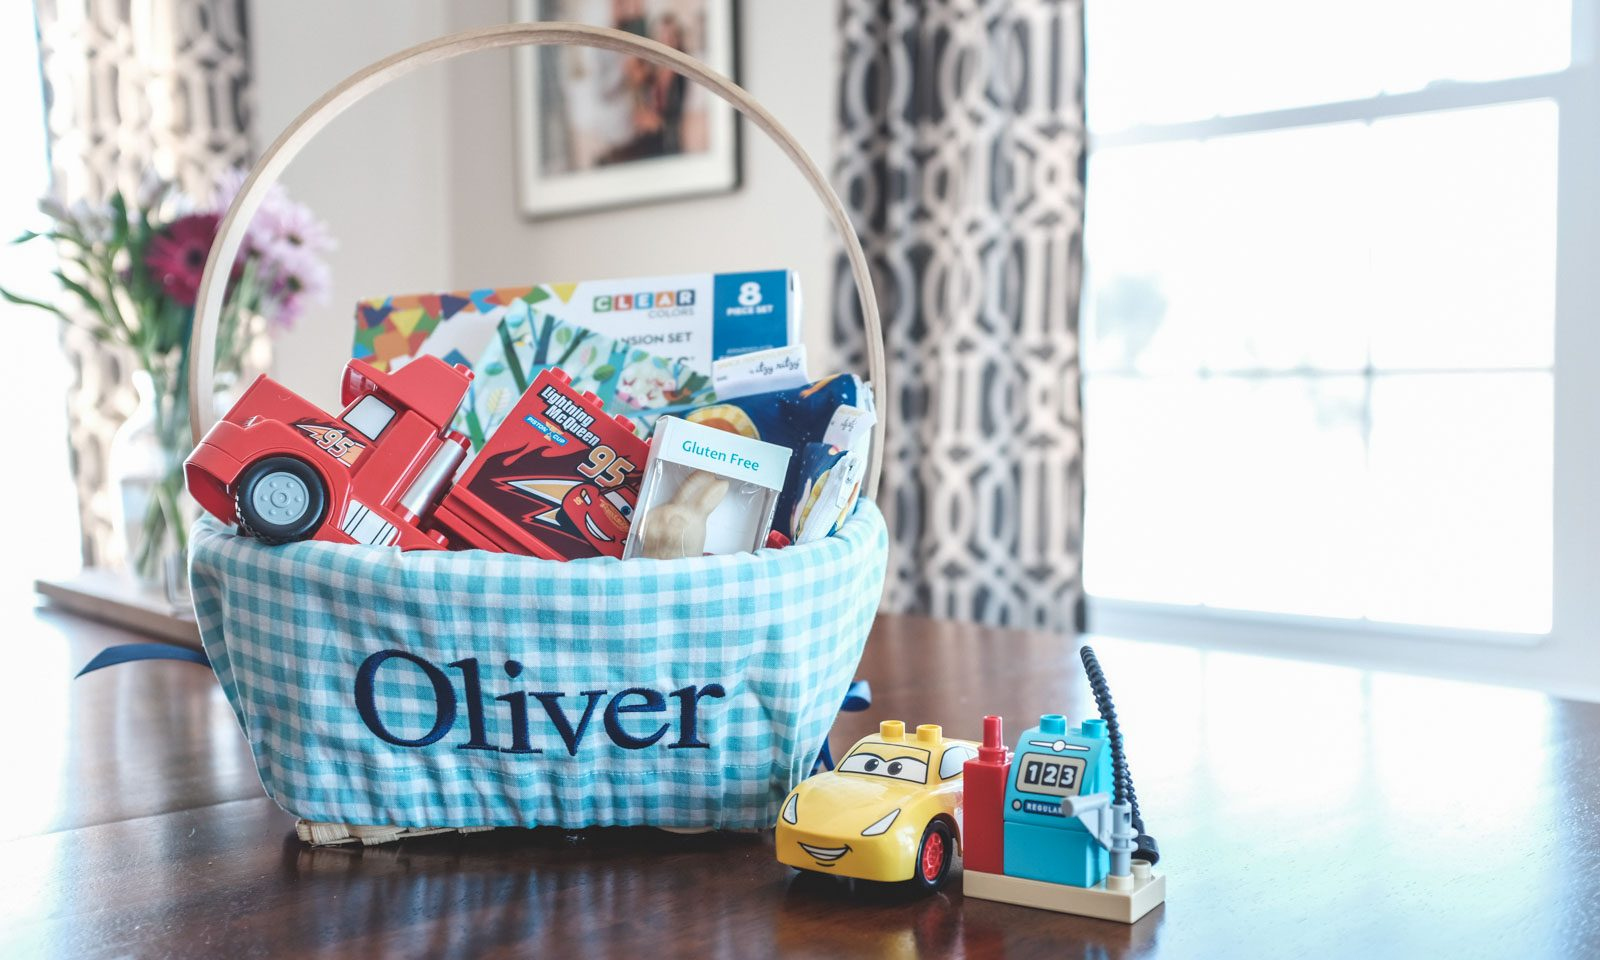 toys and books are the perfect easter basket items when celebrating easter with food allergies